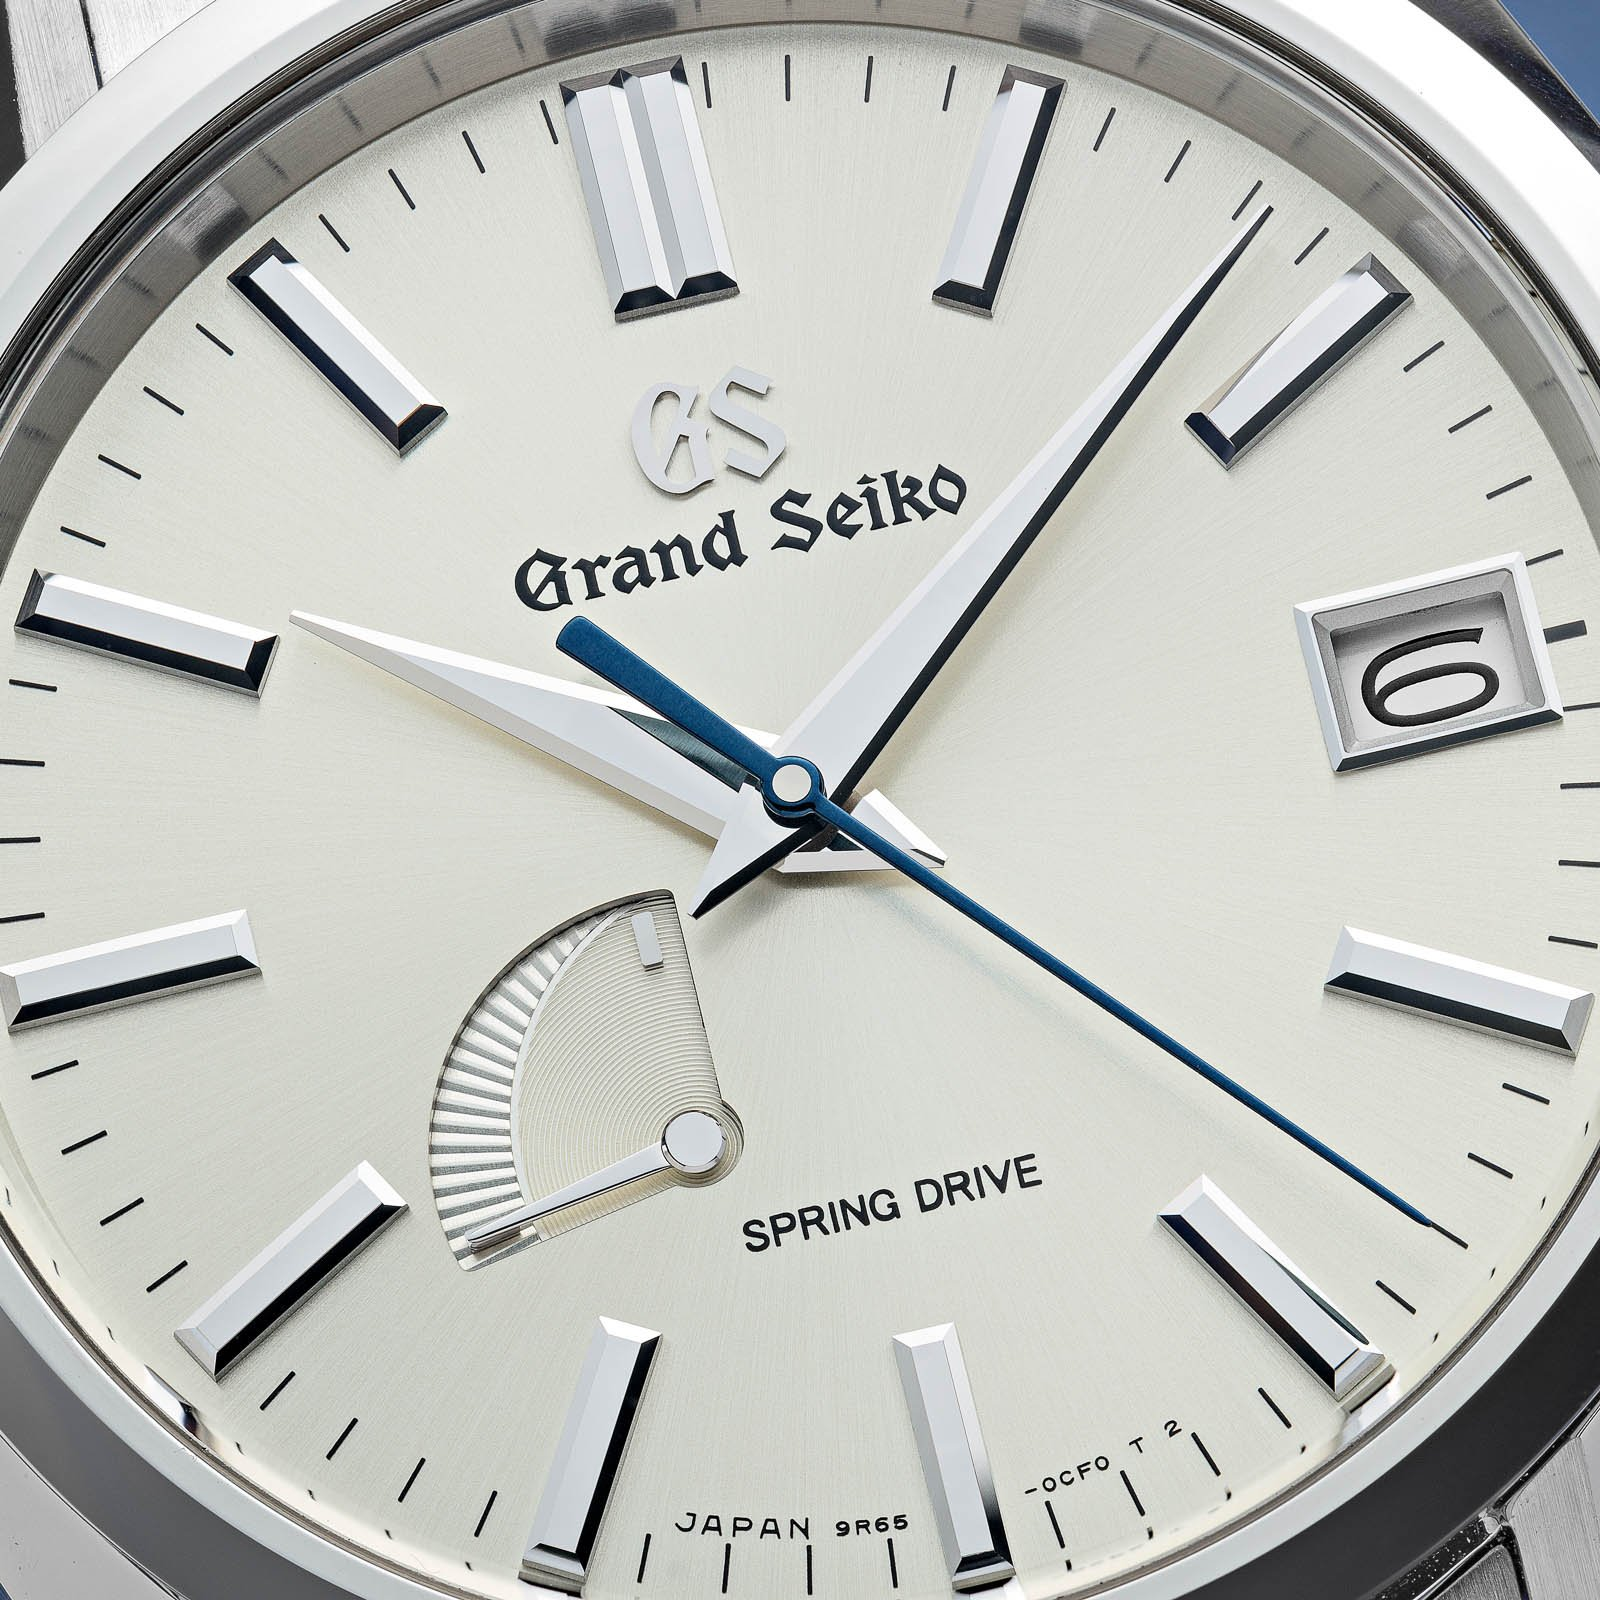 A watch with a champagne dial with silver tone indexes, hands, and a blue second hand.